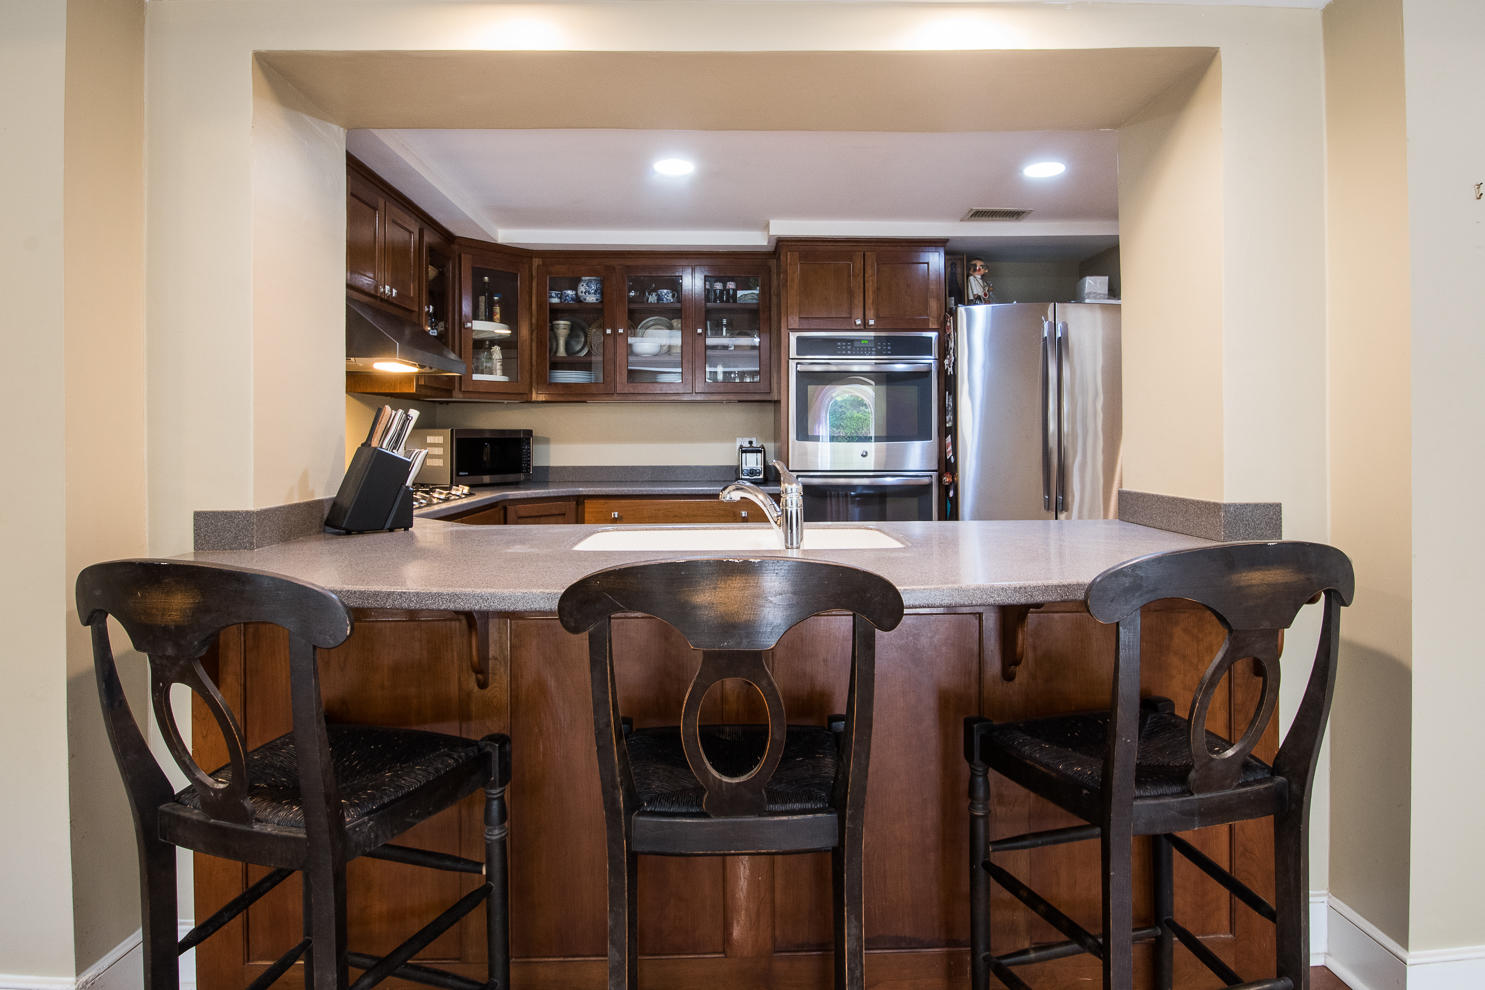 South of Broad Homes For Sale - 1 Prices, Charleston, SC - 51